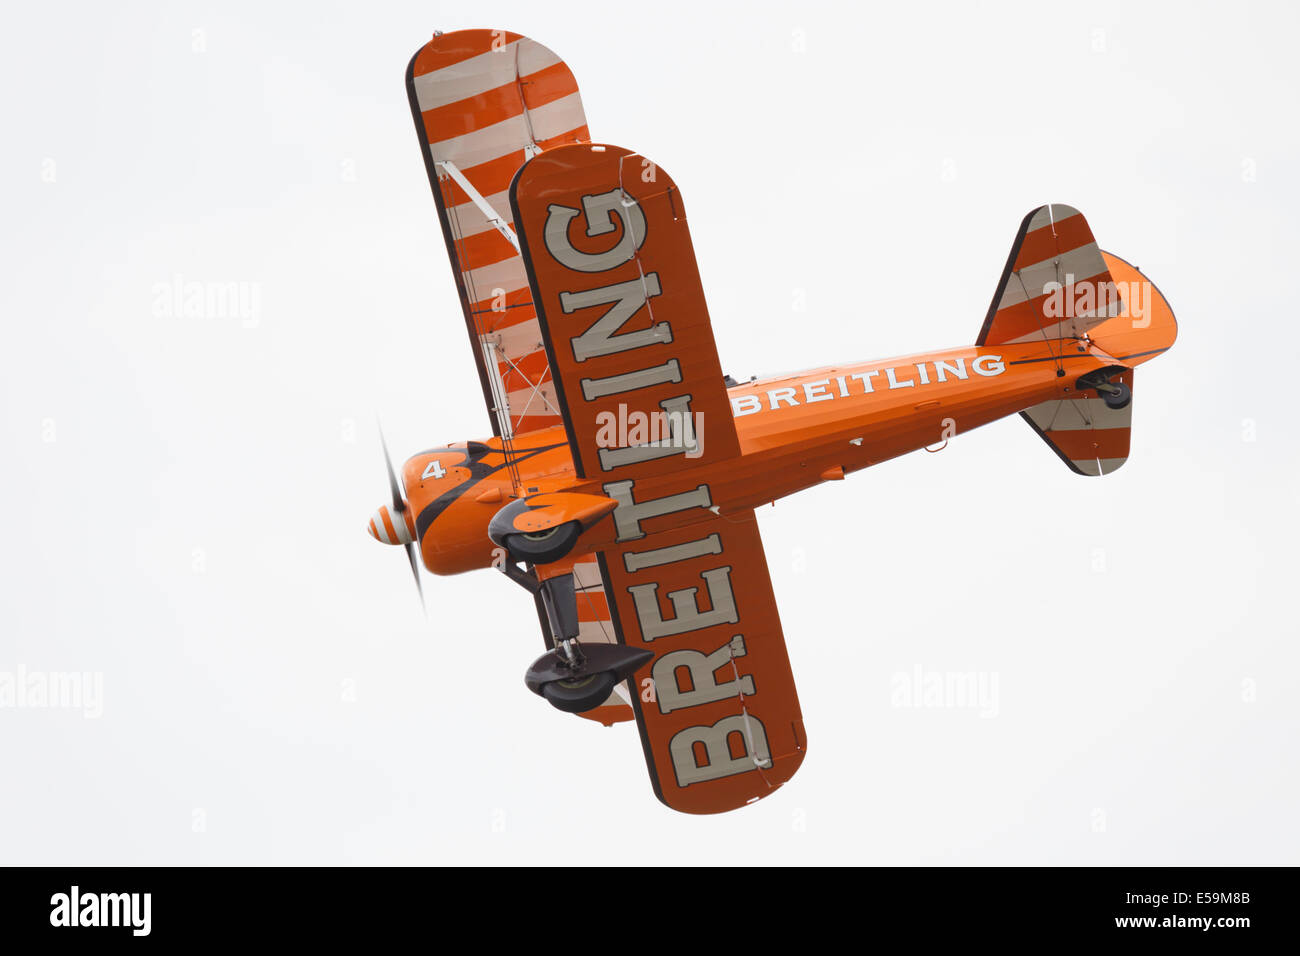 Breitling Wingwalkers at the 2014 Farnborough Airshow - Stock Image